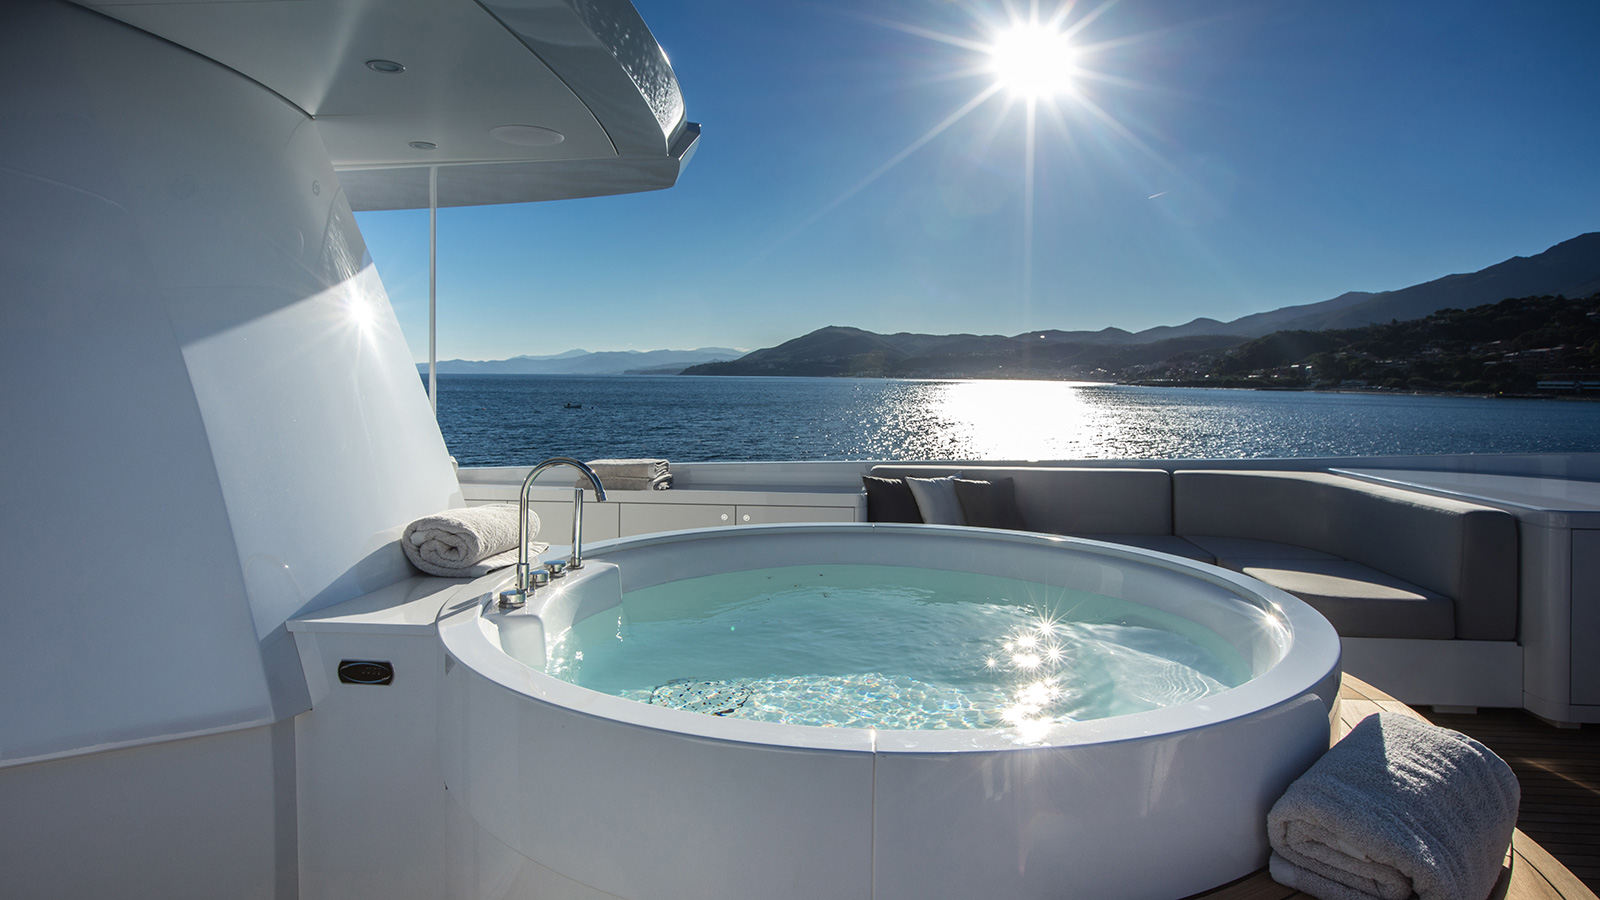 the-spa-pool-on-the-otam-sd-35-super-yacht-gipsy